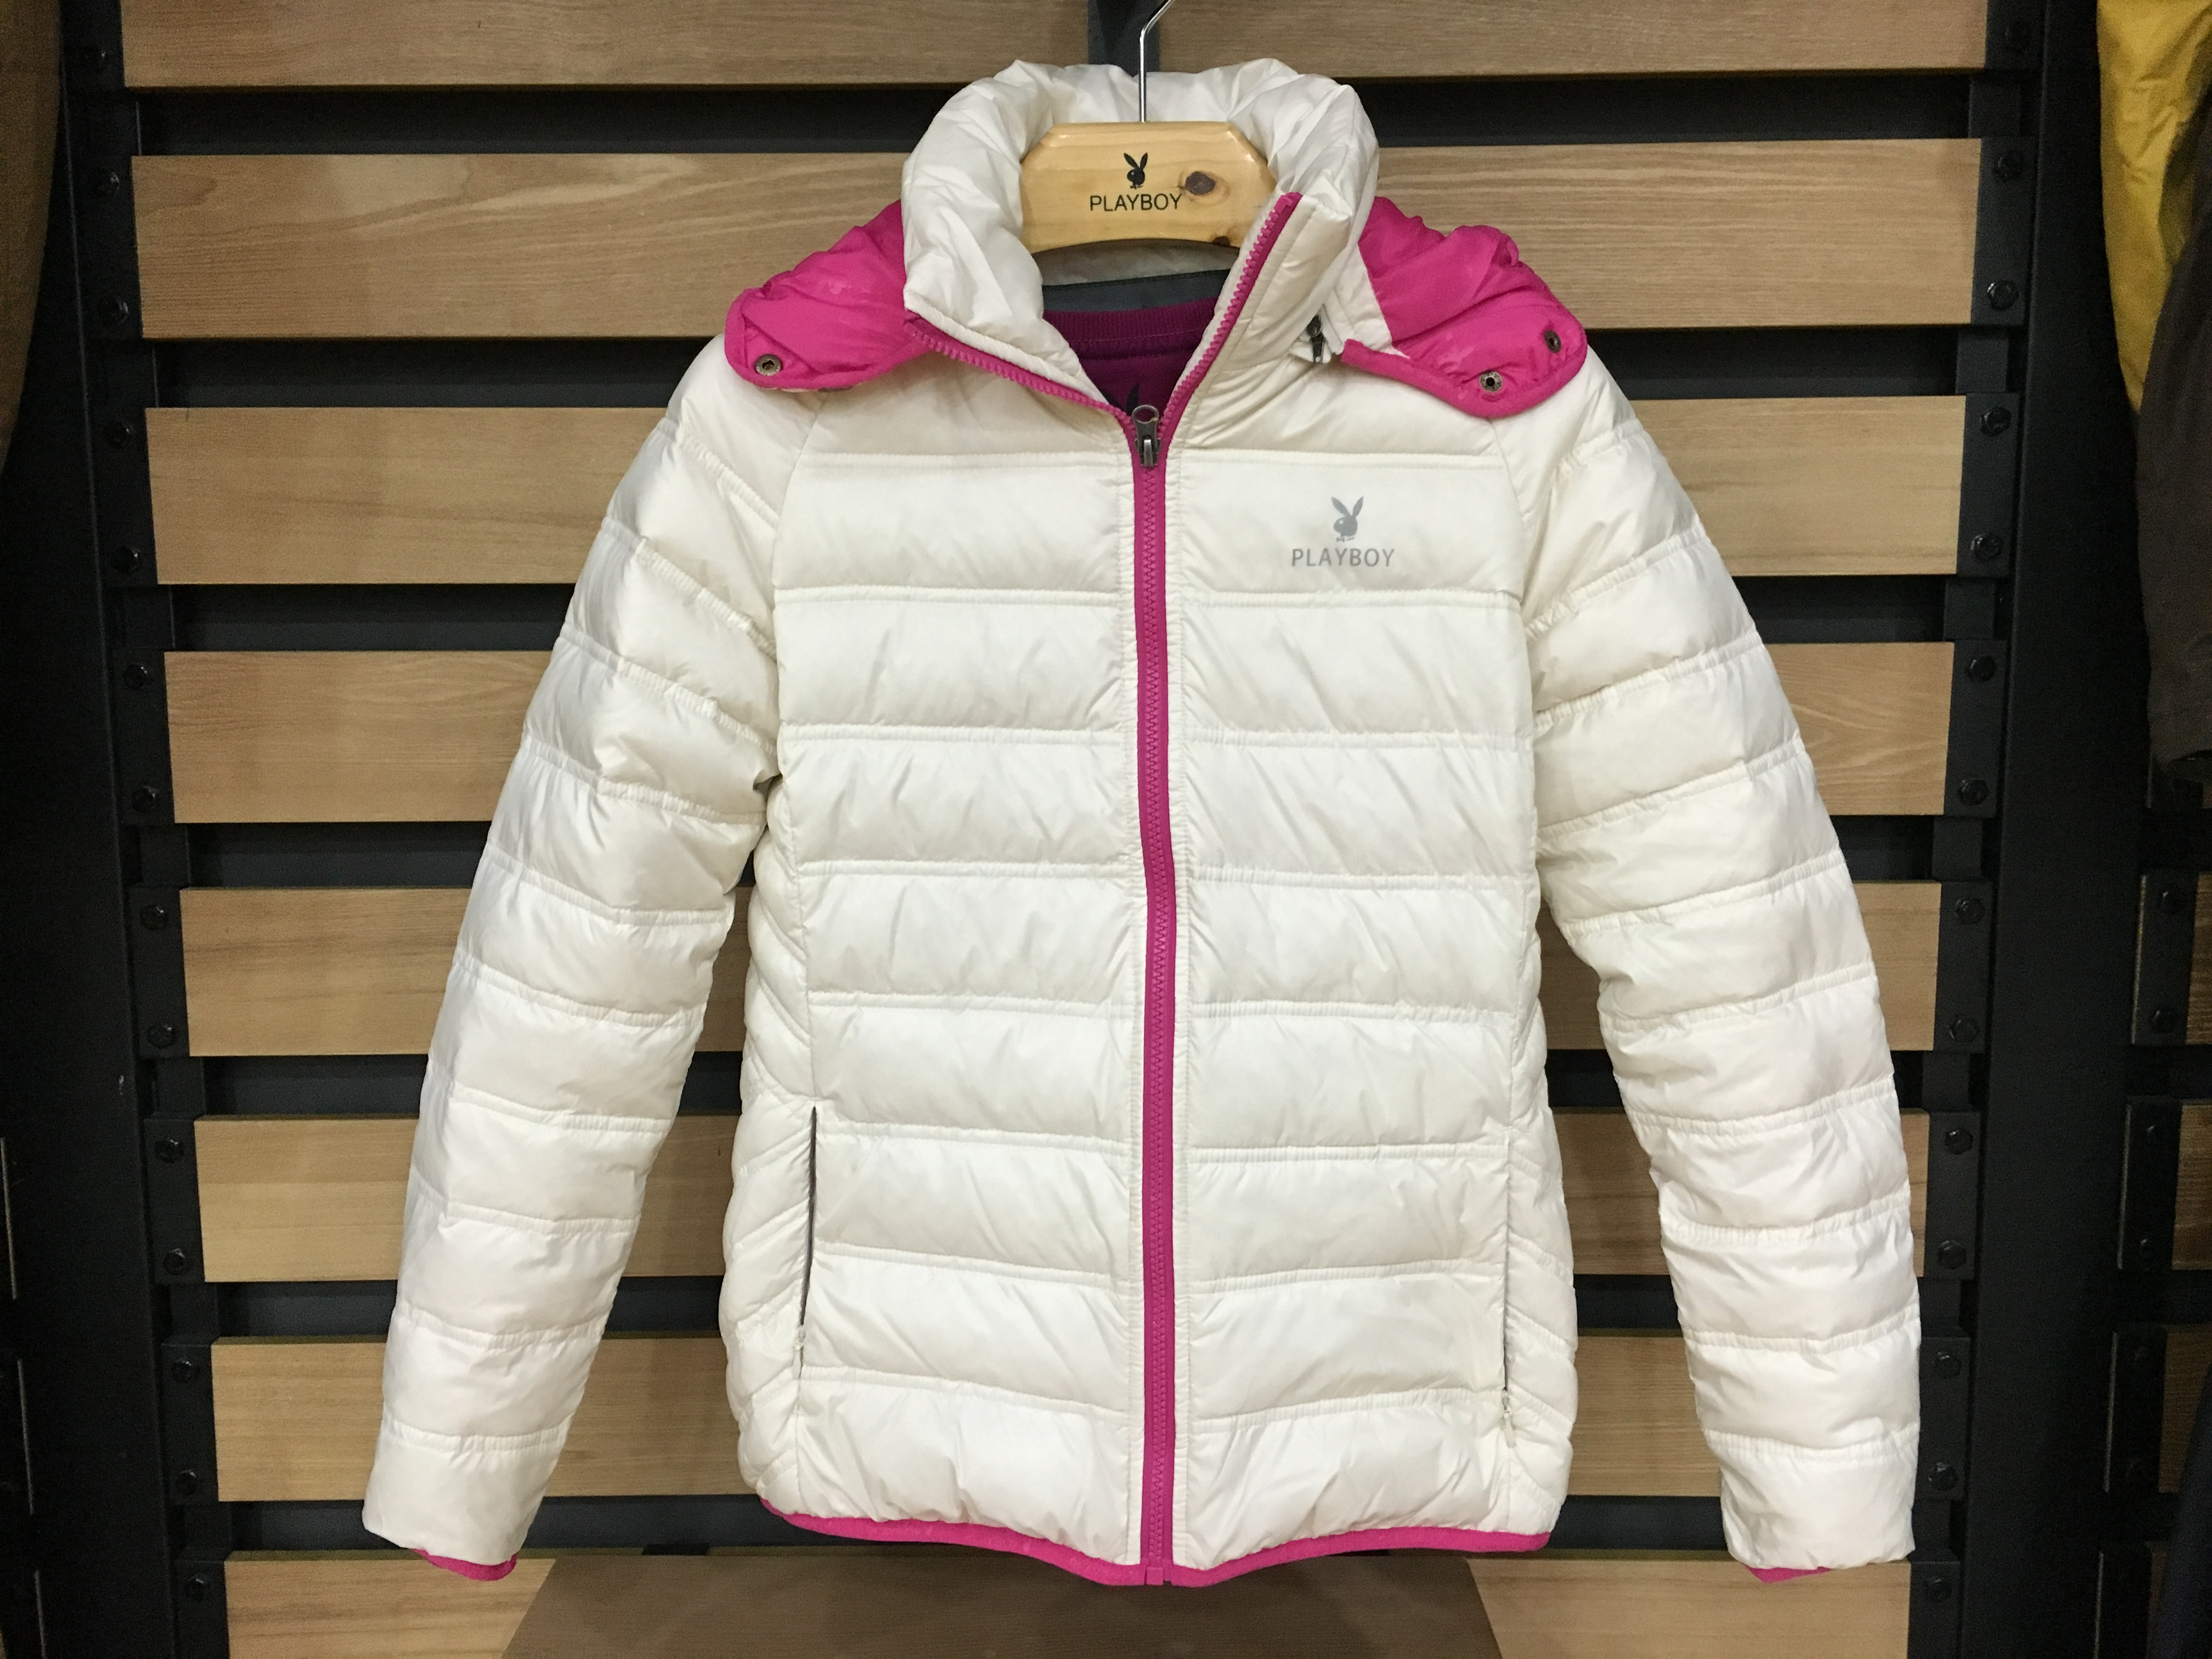 Packaging winter NEW PLAYBOY genuine outdoor women's thermal cotton jacket down jacket EY97032